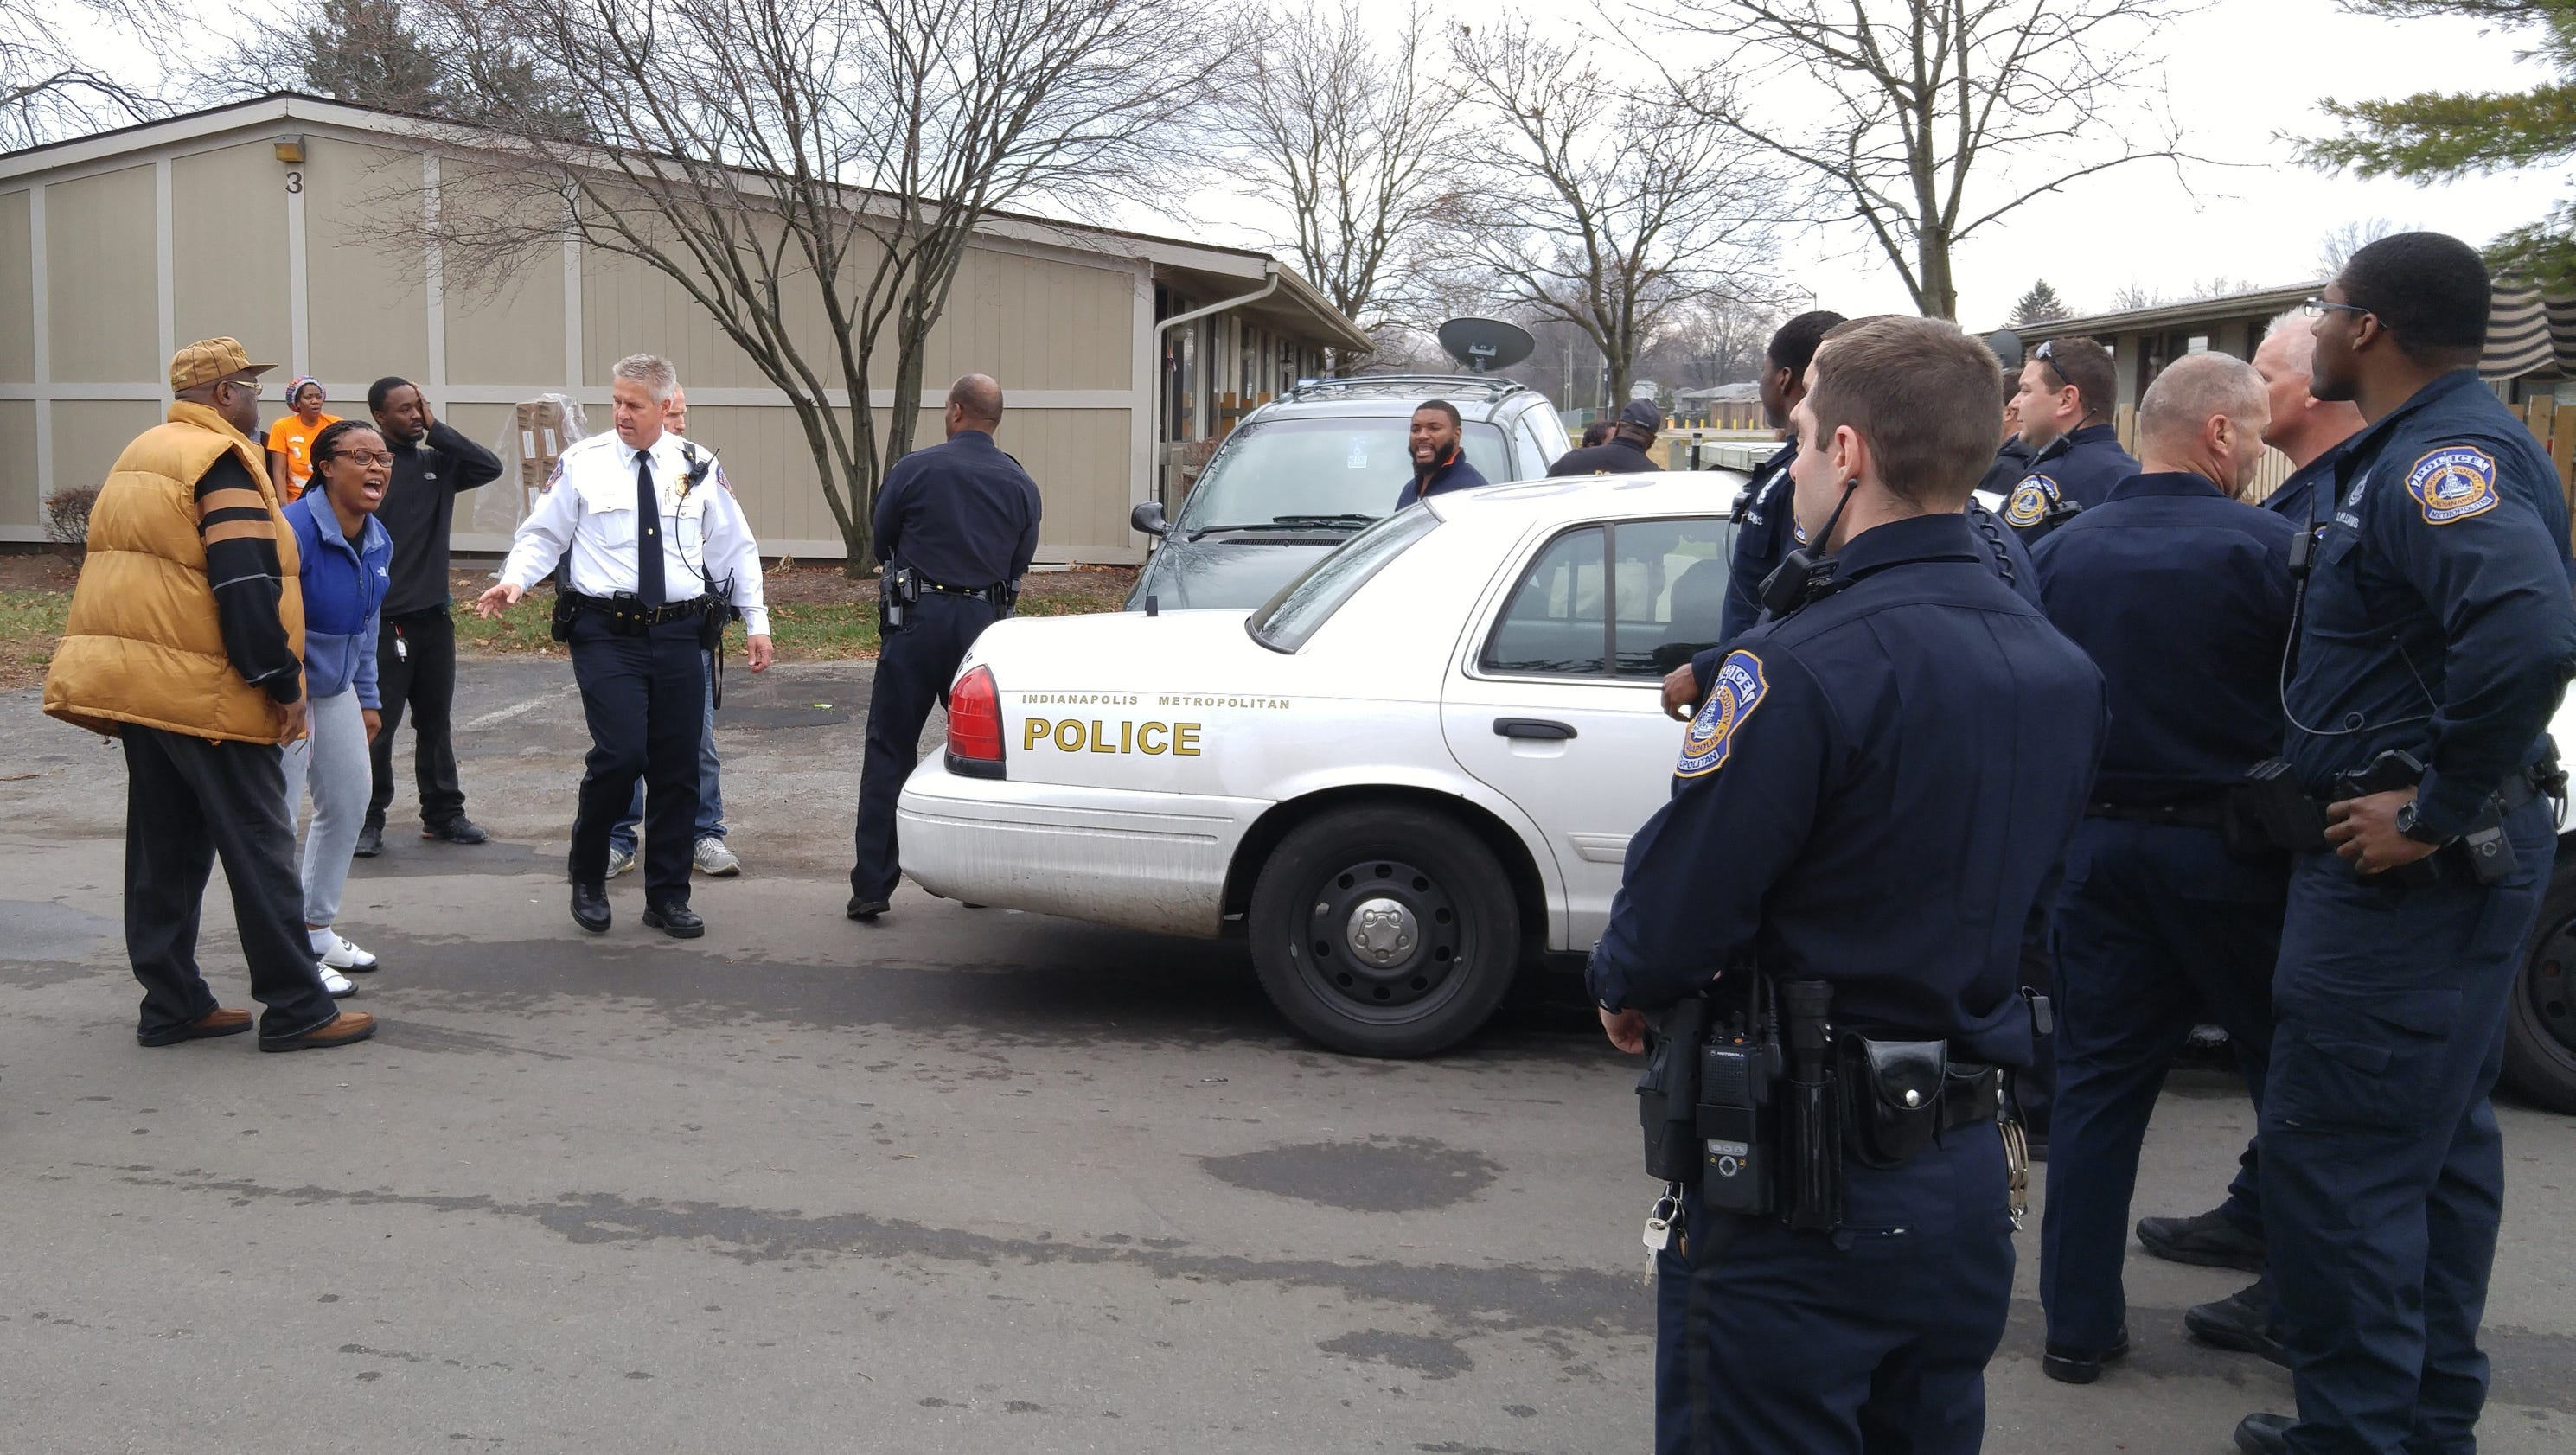 City Of Lawrence Police Department